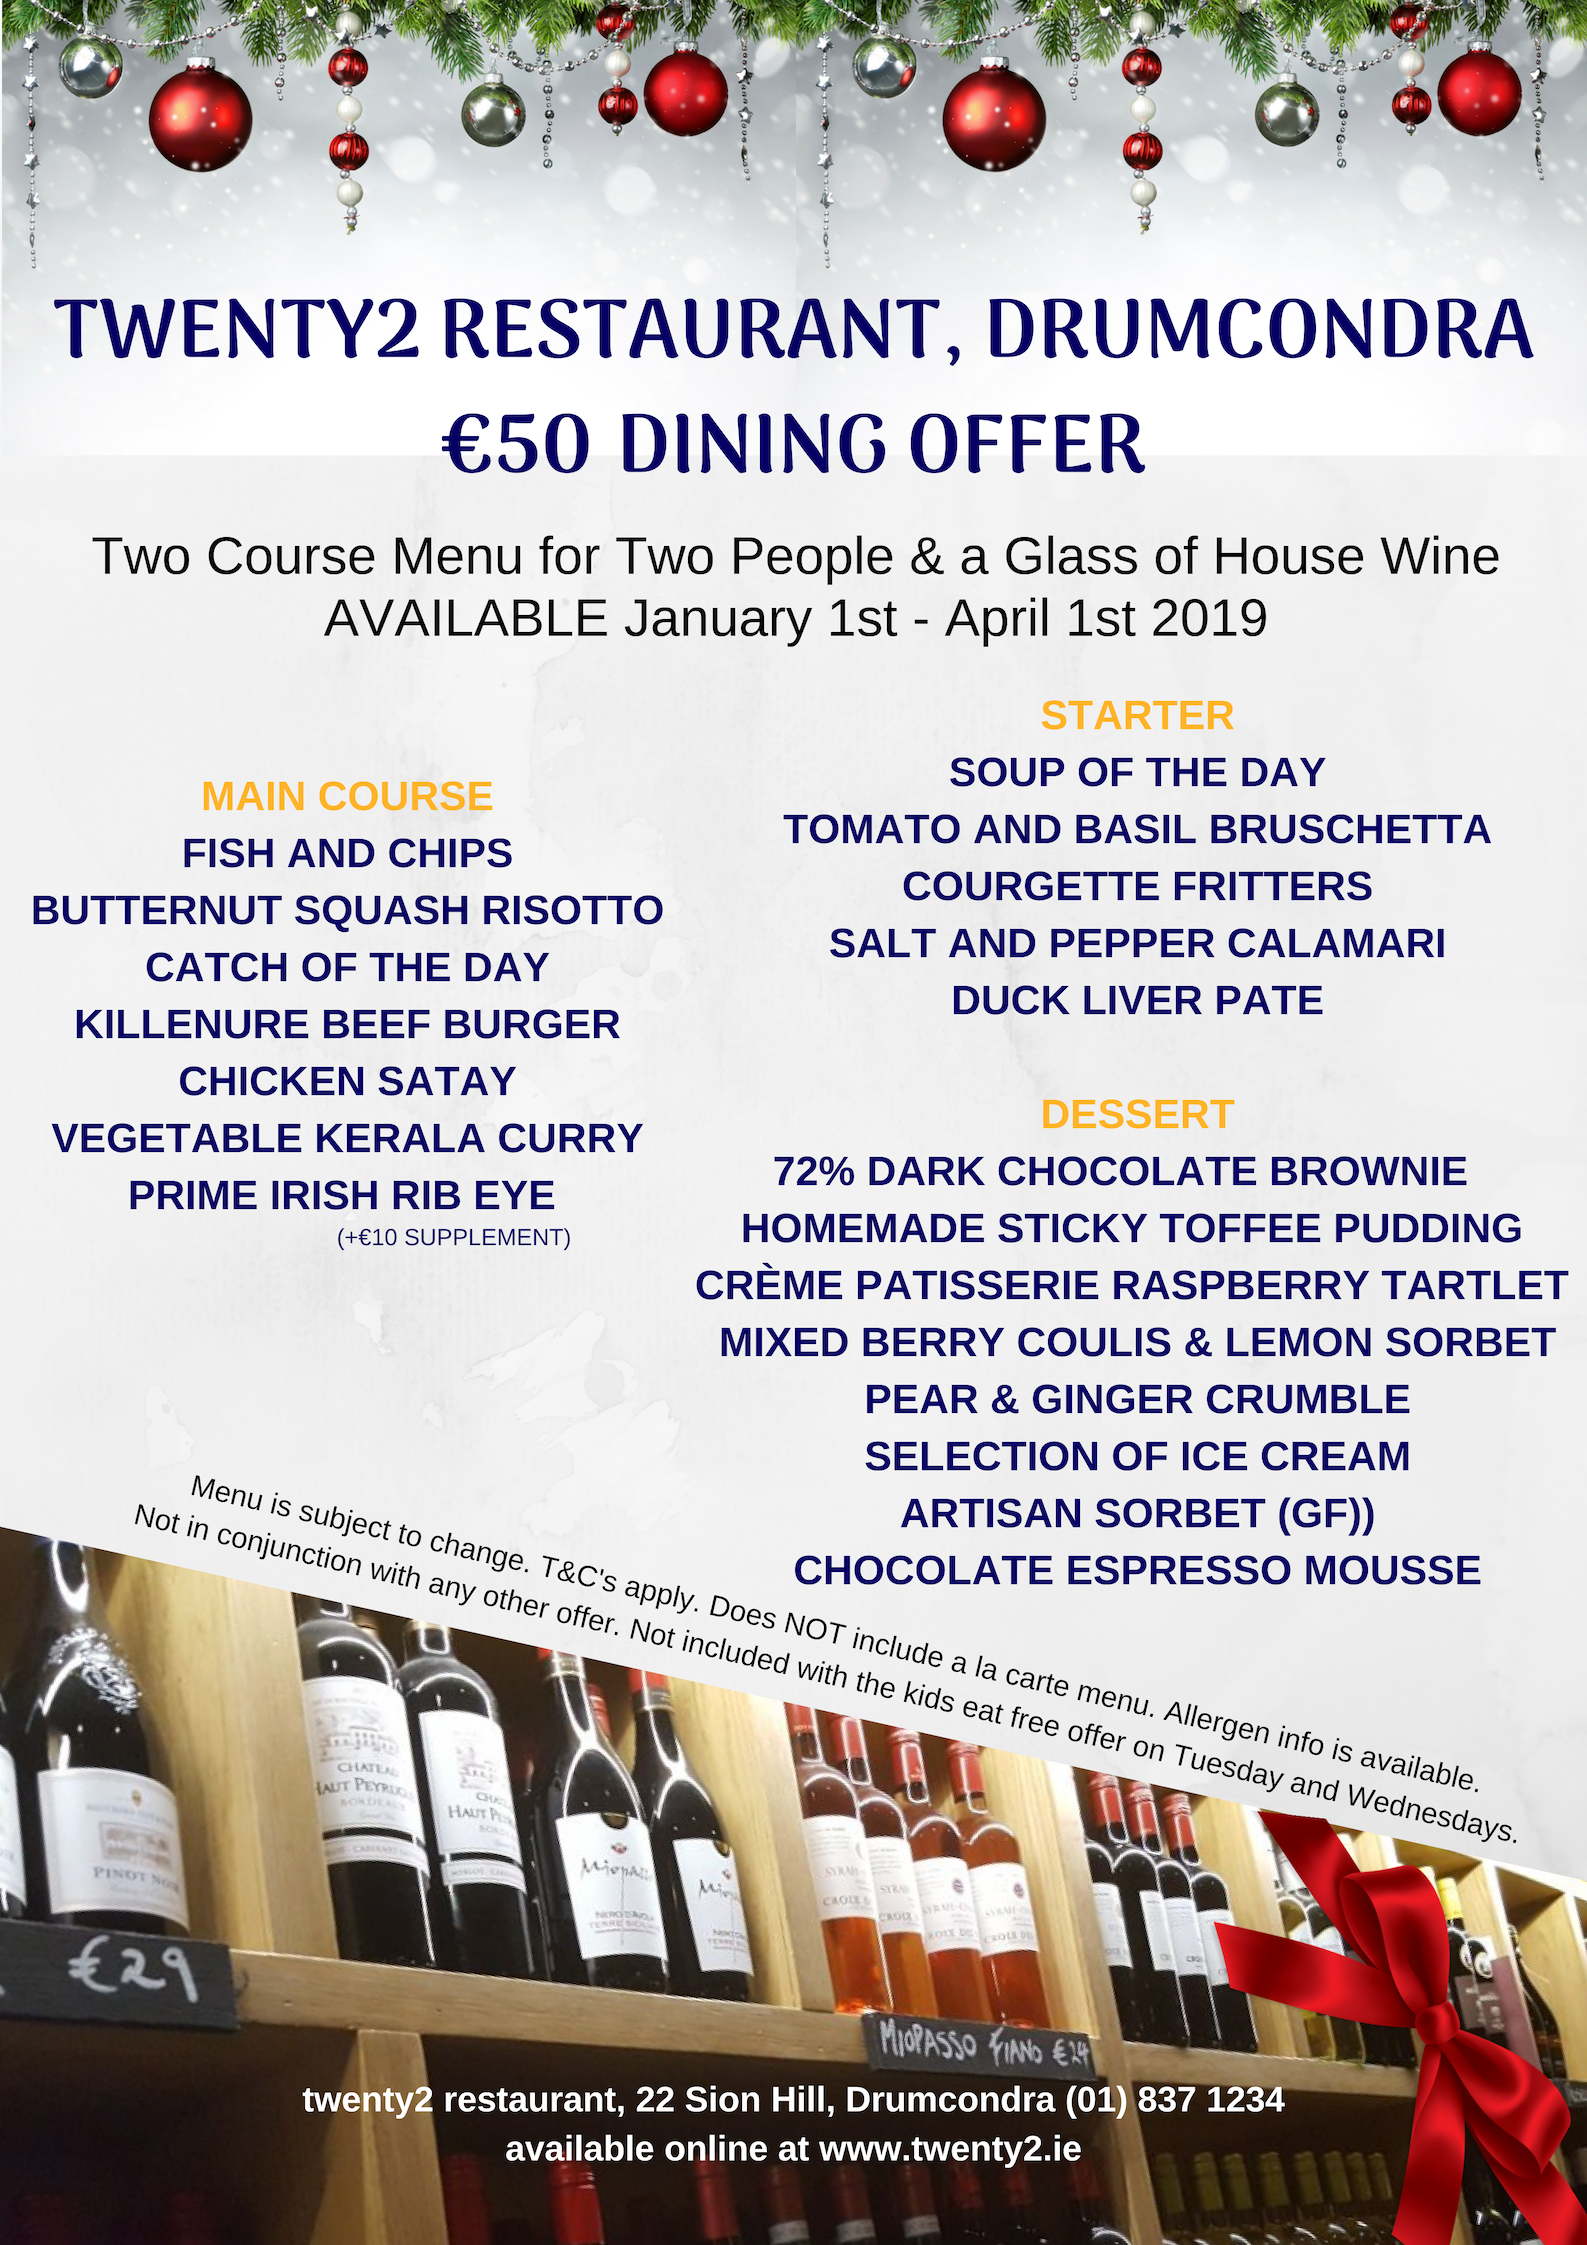 Dining offer sample menu, subject to change, supplements apply to steak and wine upgrade.